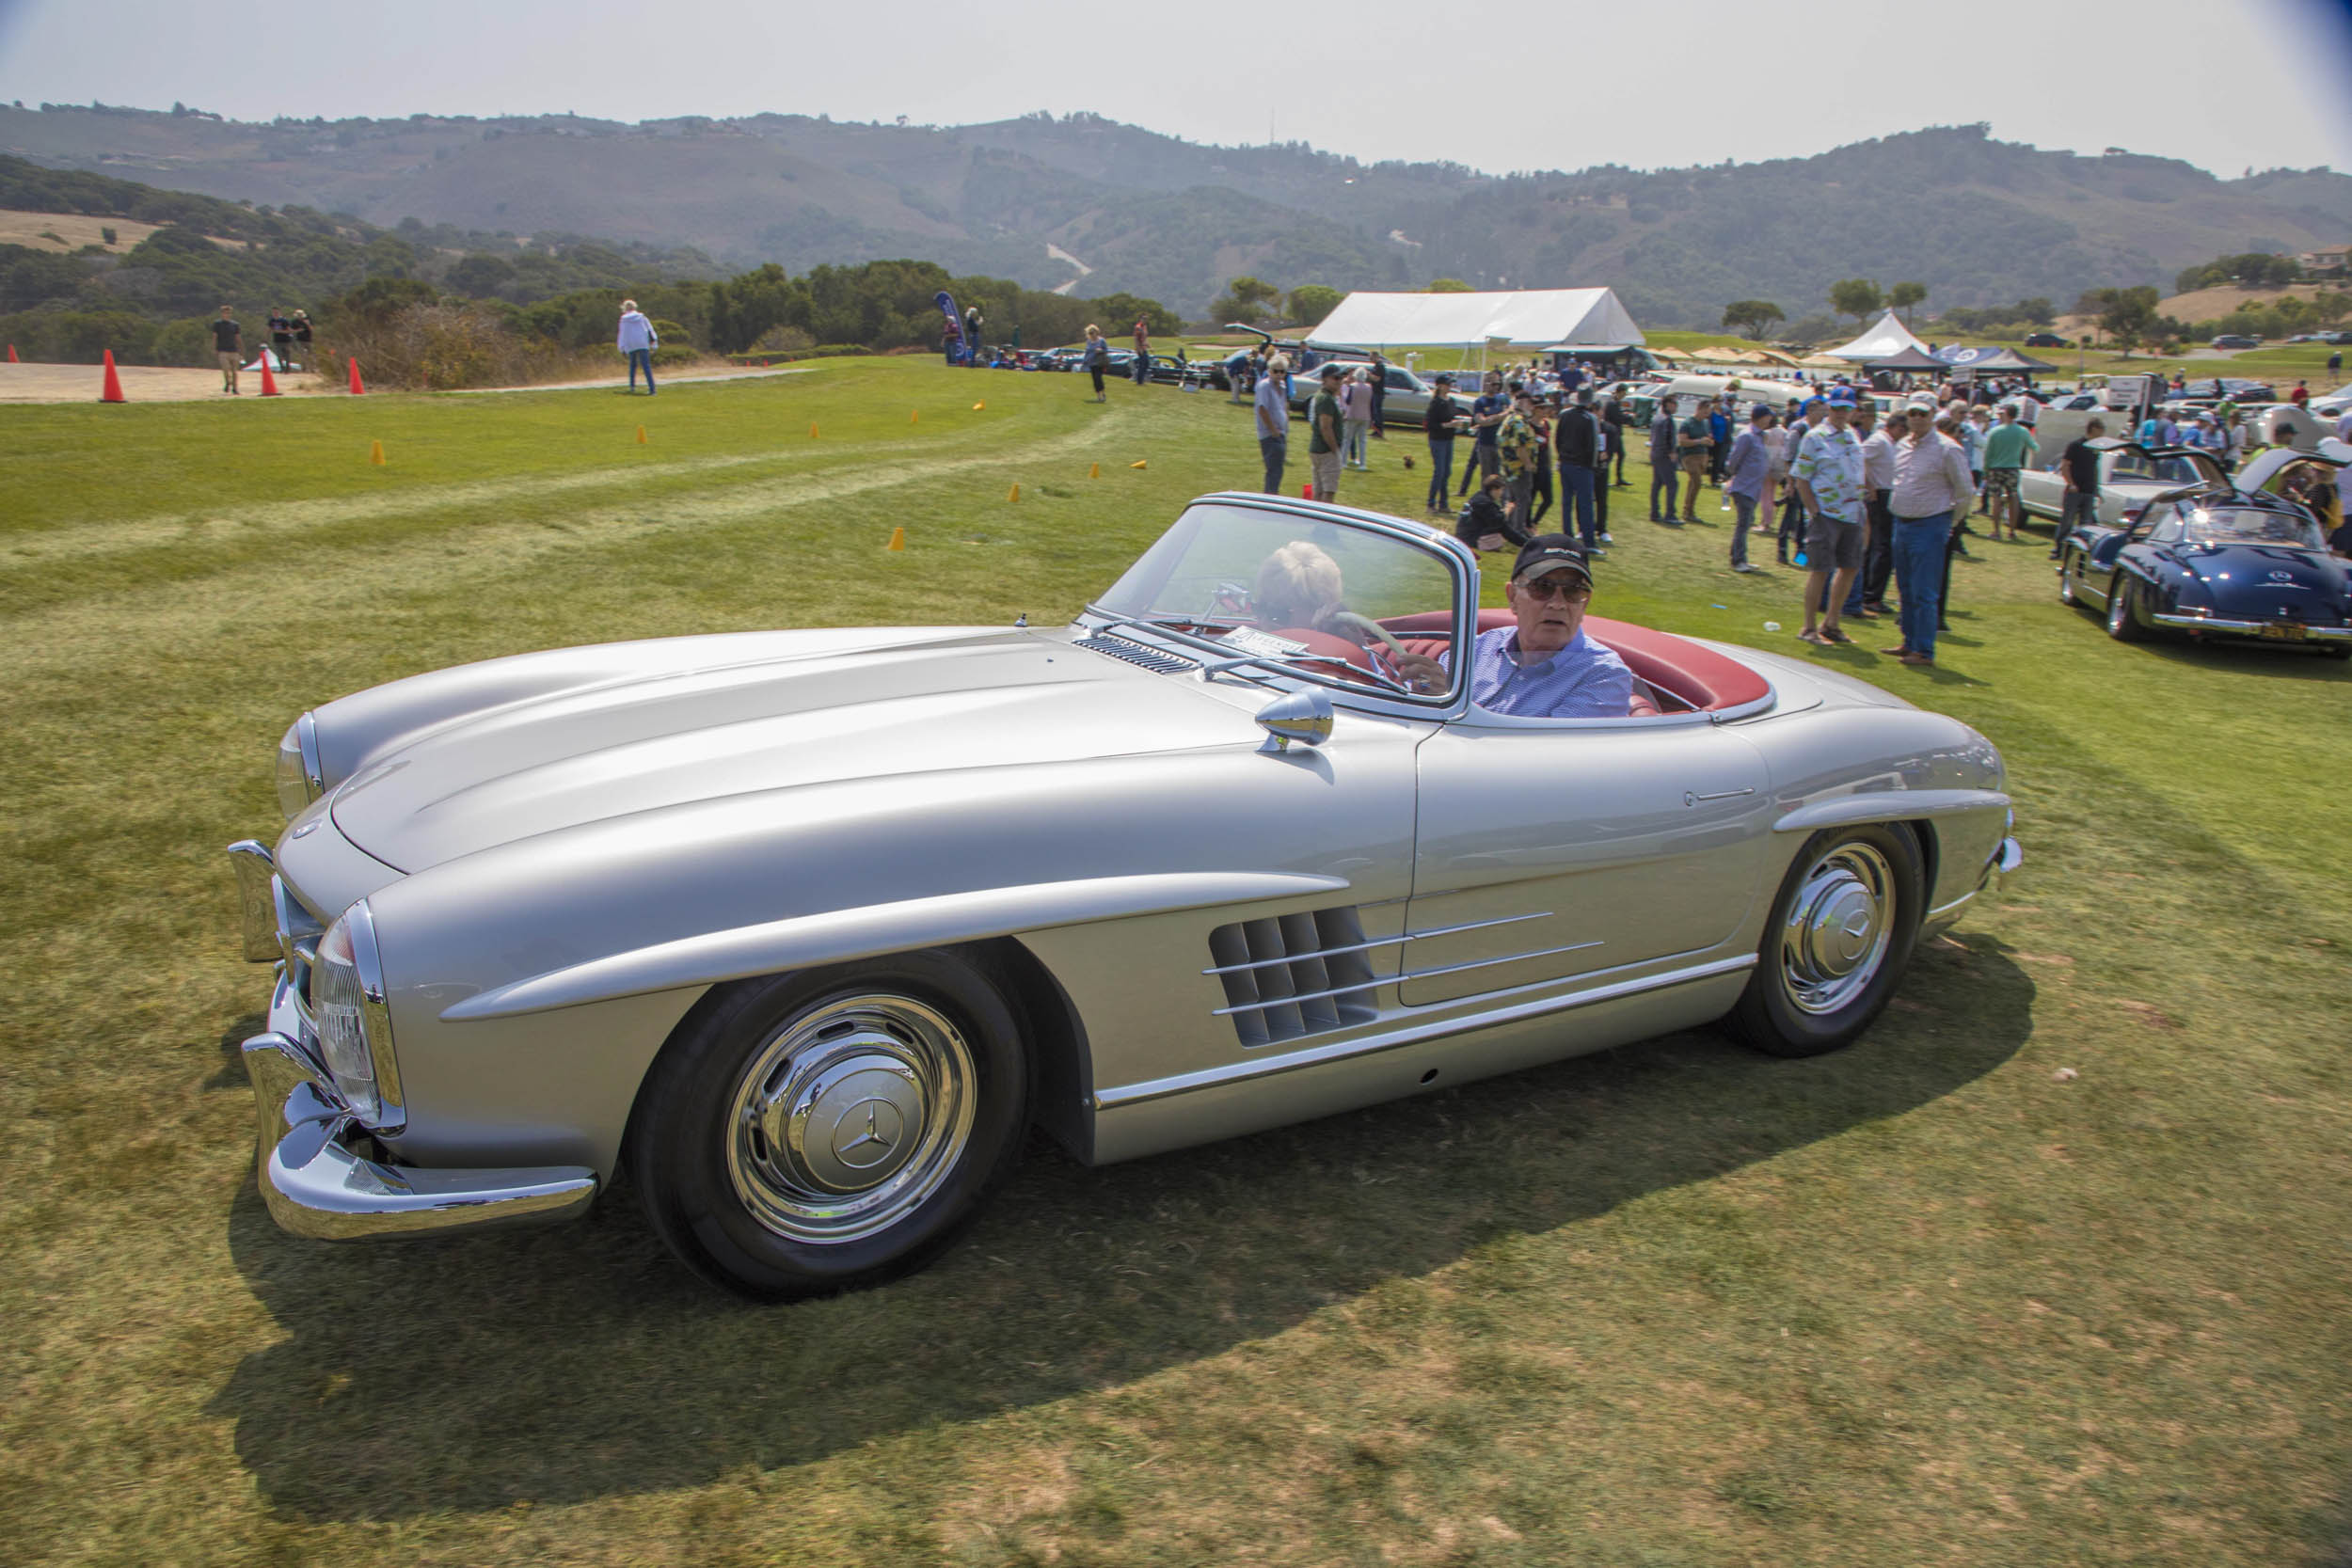 This gorgeous silver Mercedes-Benz 300SL roadster stood out in the Legends crowd not only for its flawless presentation but also for its dignified owners. It won its class, and deservedly so.